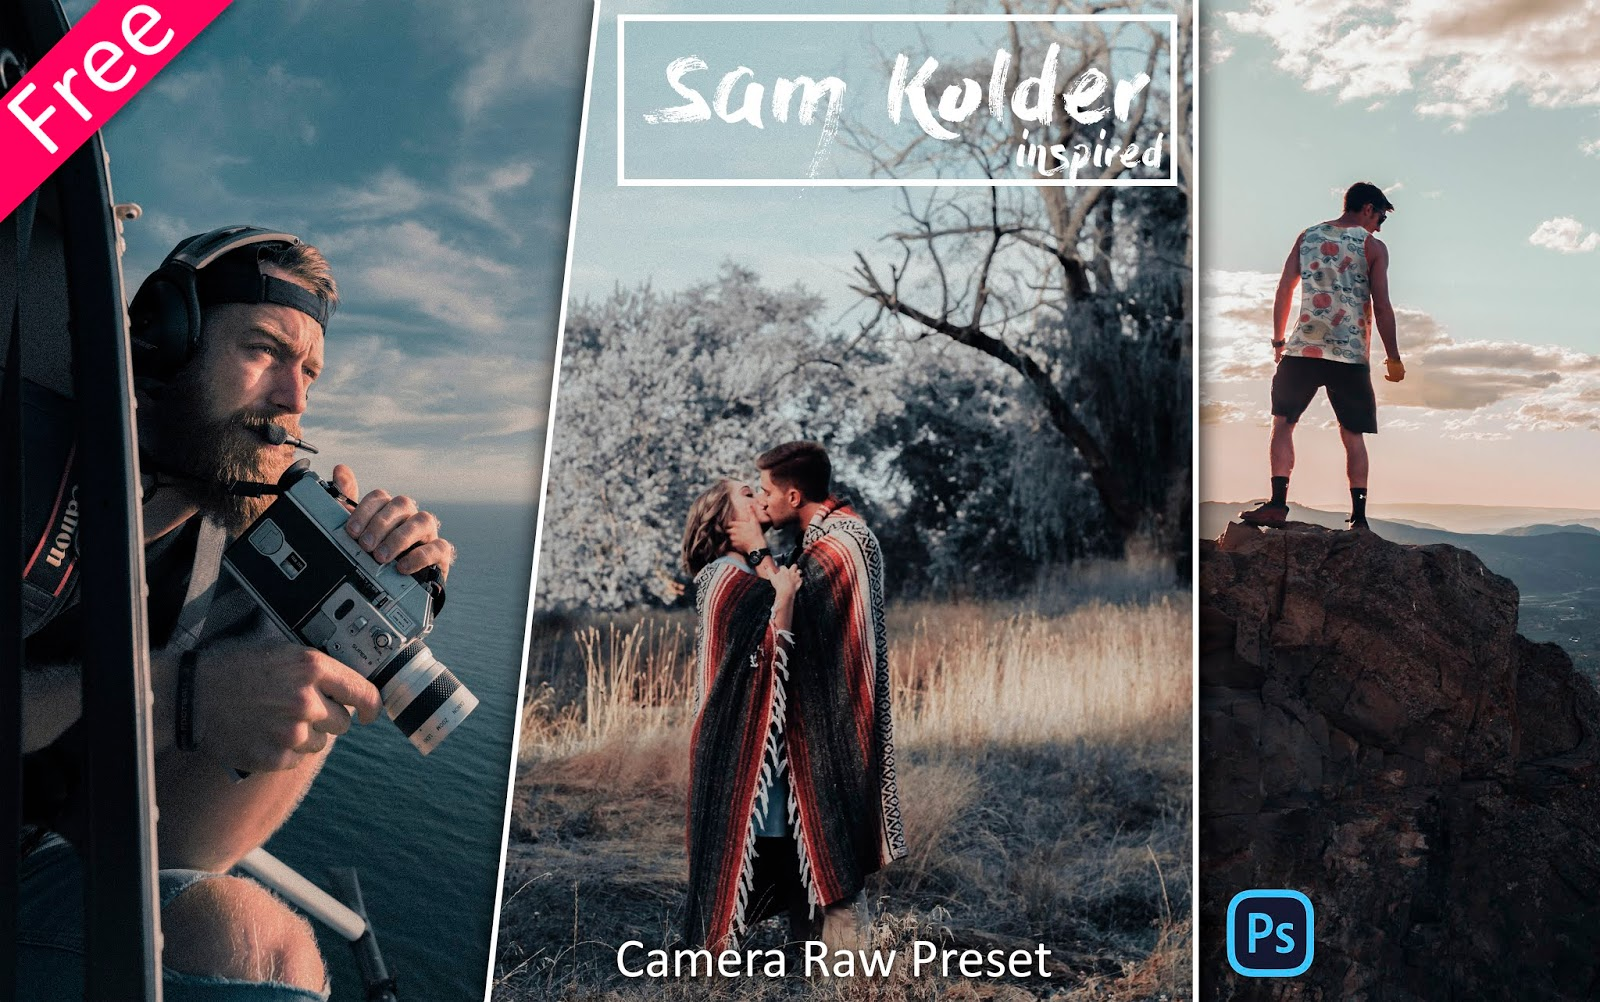 Download Sam Kolder Camera Raw Presets for Free | How to Edit Photos Like Sam Kolder in Photoshop